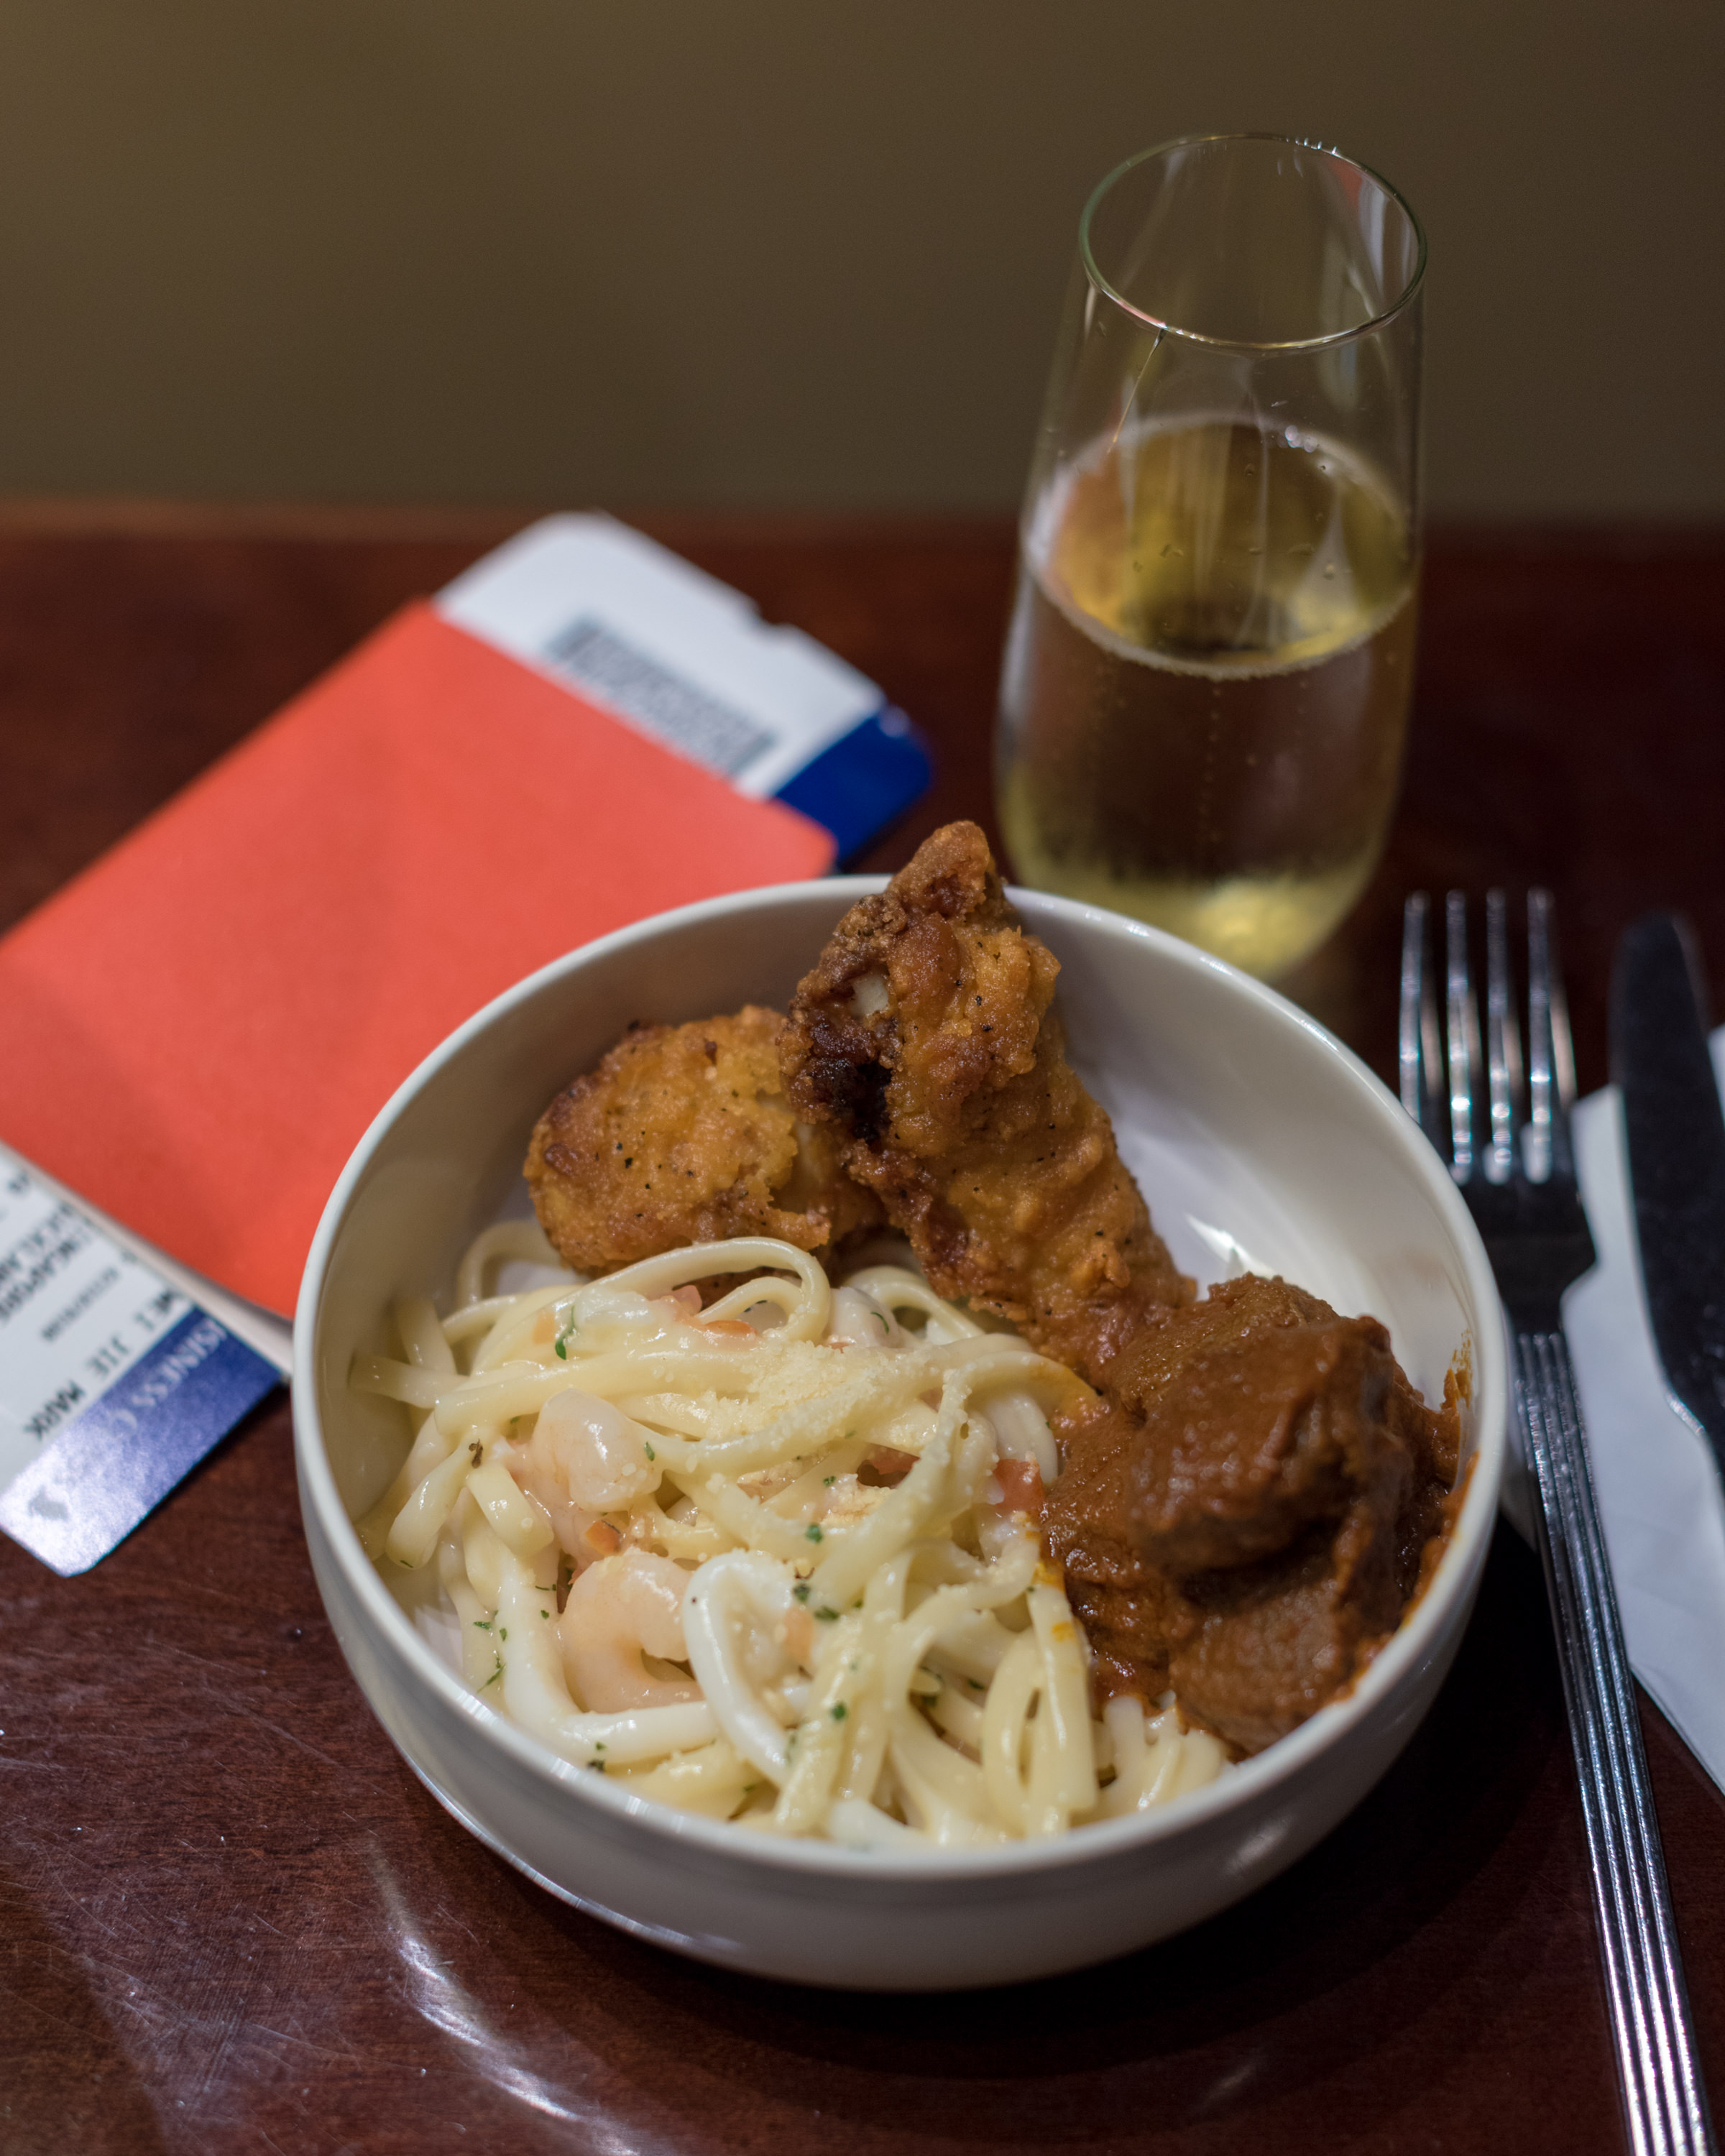 Charles Heidsieck Brut Reserve Champagne and Pasta  SilverKris Lounge - Terminal 3, Changi Airport